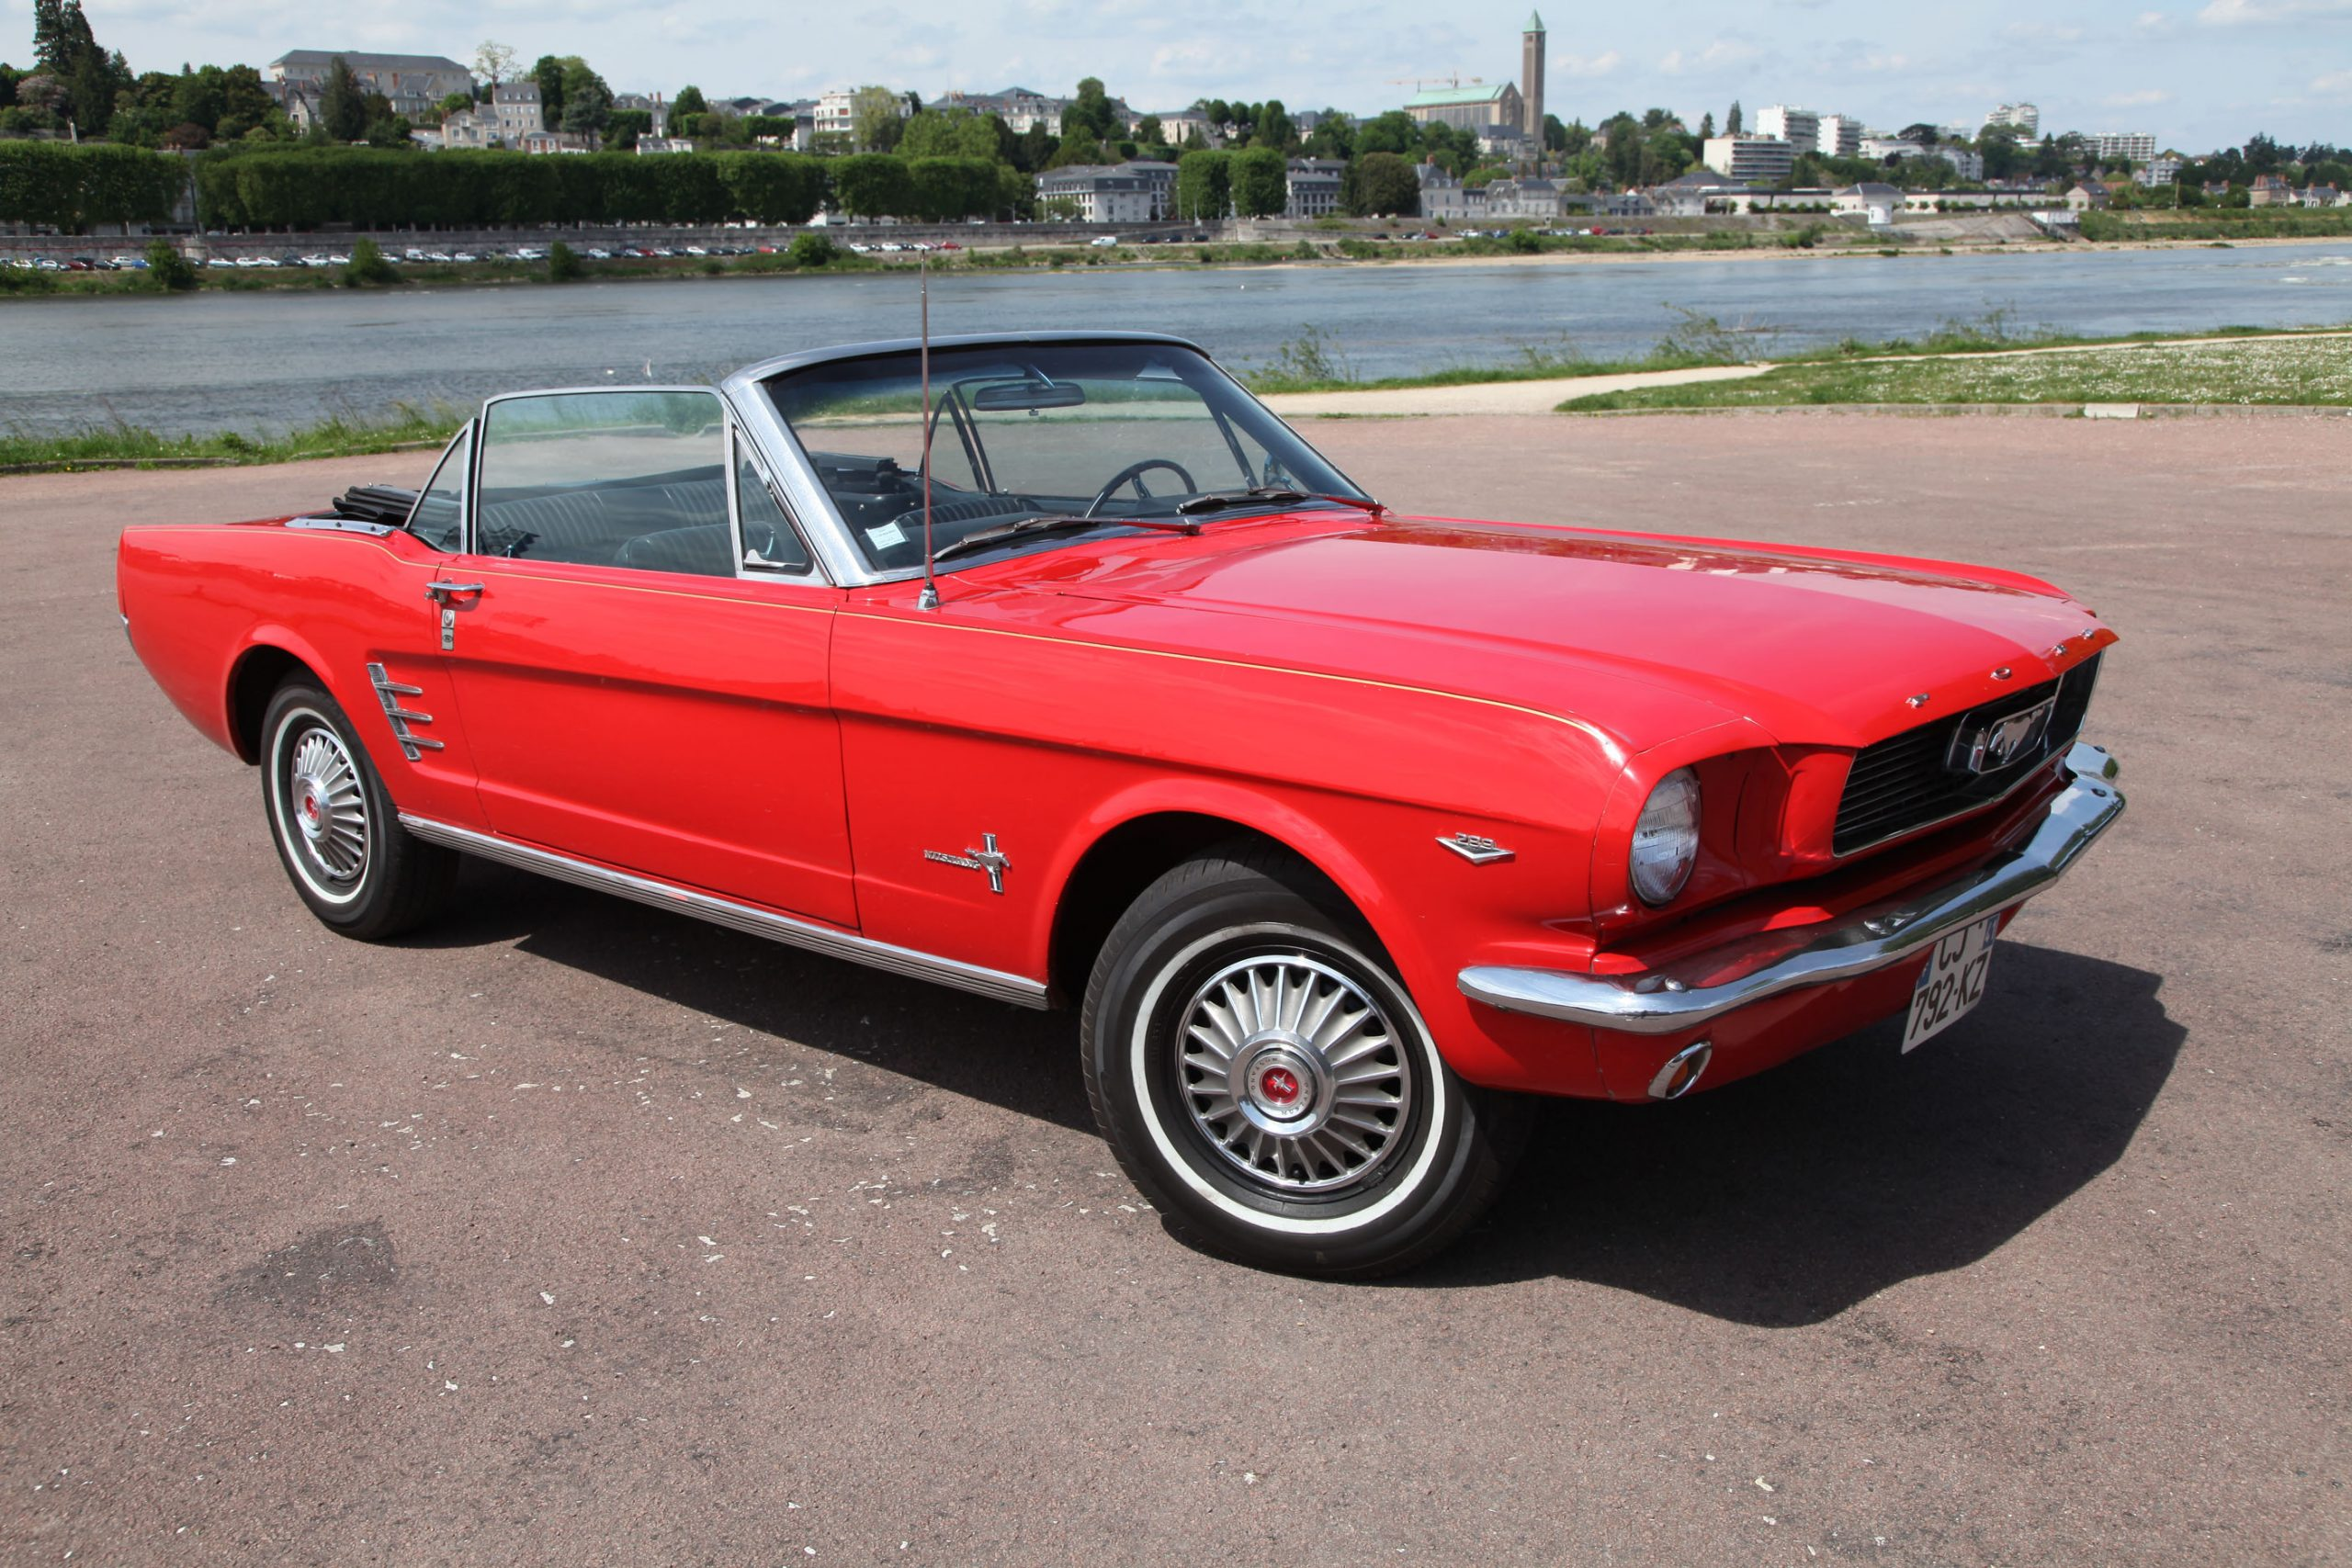 Vente vehicule collection ancien - import direct des etats unis - ford mustang cabriolet capote manuelle